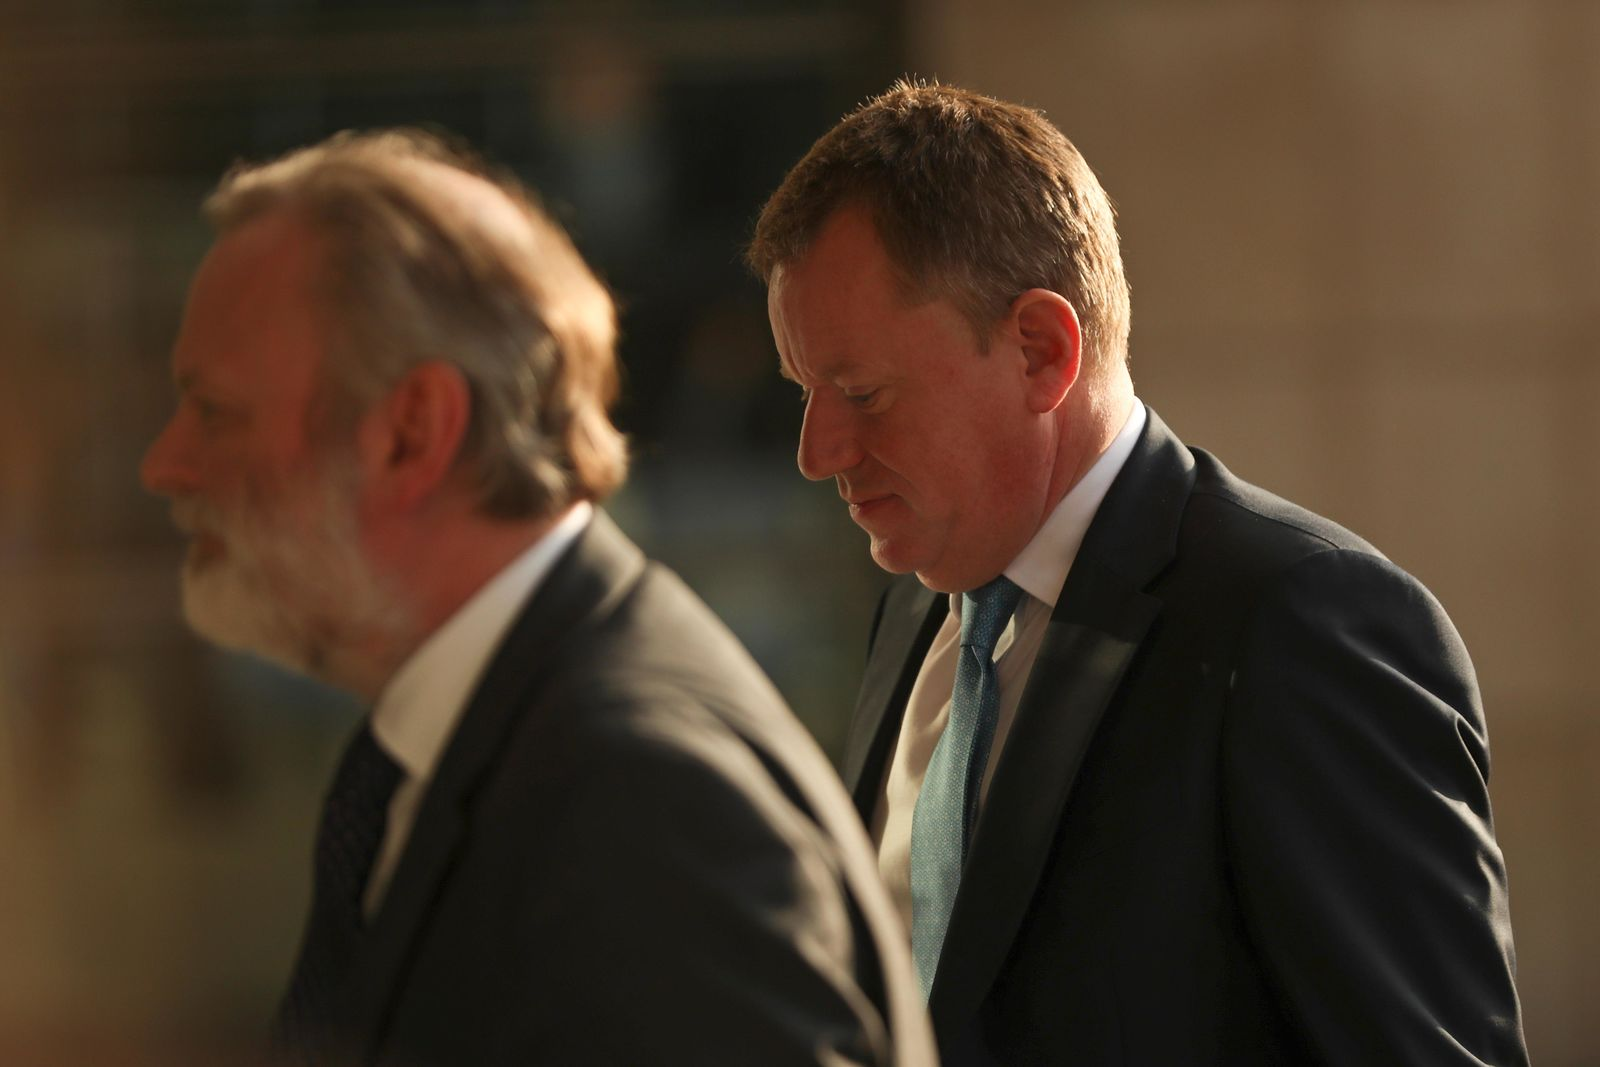 Britain's Brexit advisor David Frost, right, and British Ambassador to the EU Tim Barrow arrive at EU headquarters for a technical meeting on Brexit in Brussels on Monday, Oct. 14, 2019. (AP Photo/Francisco Seco)